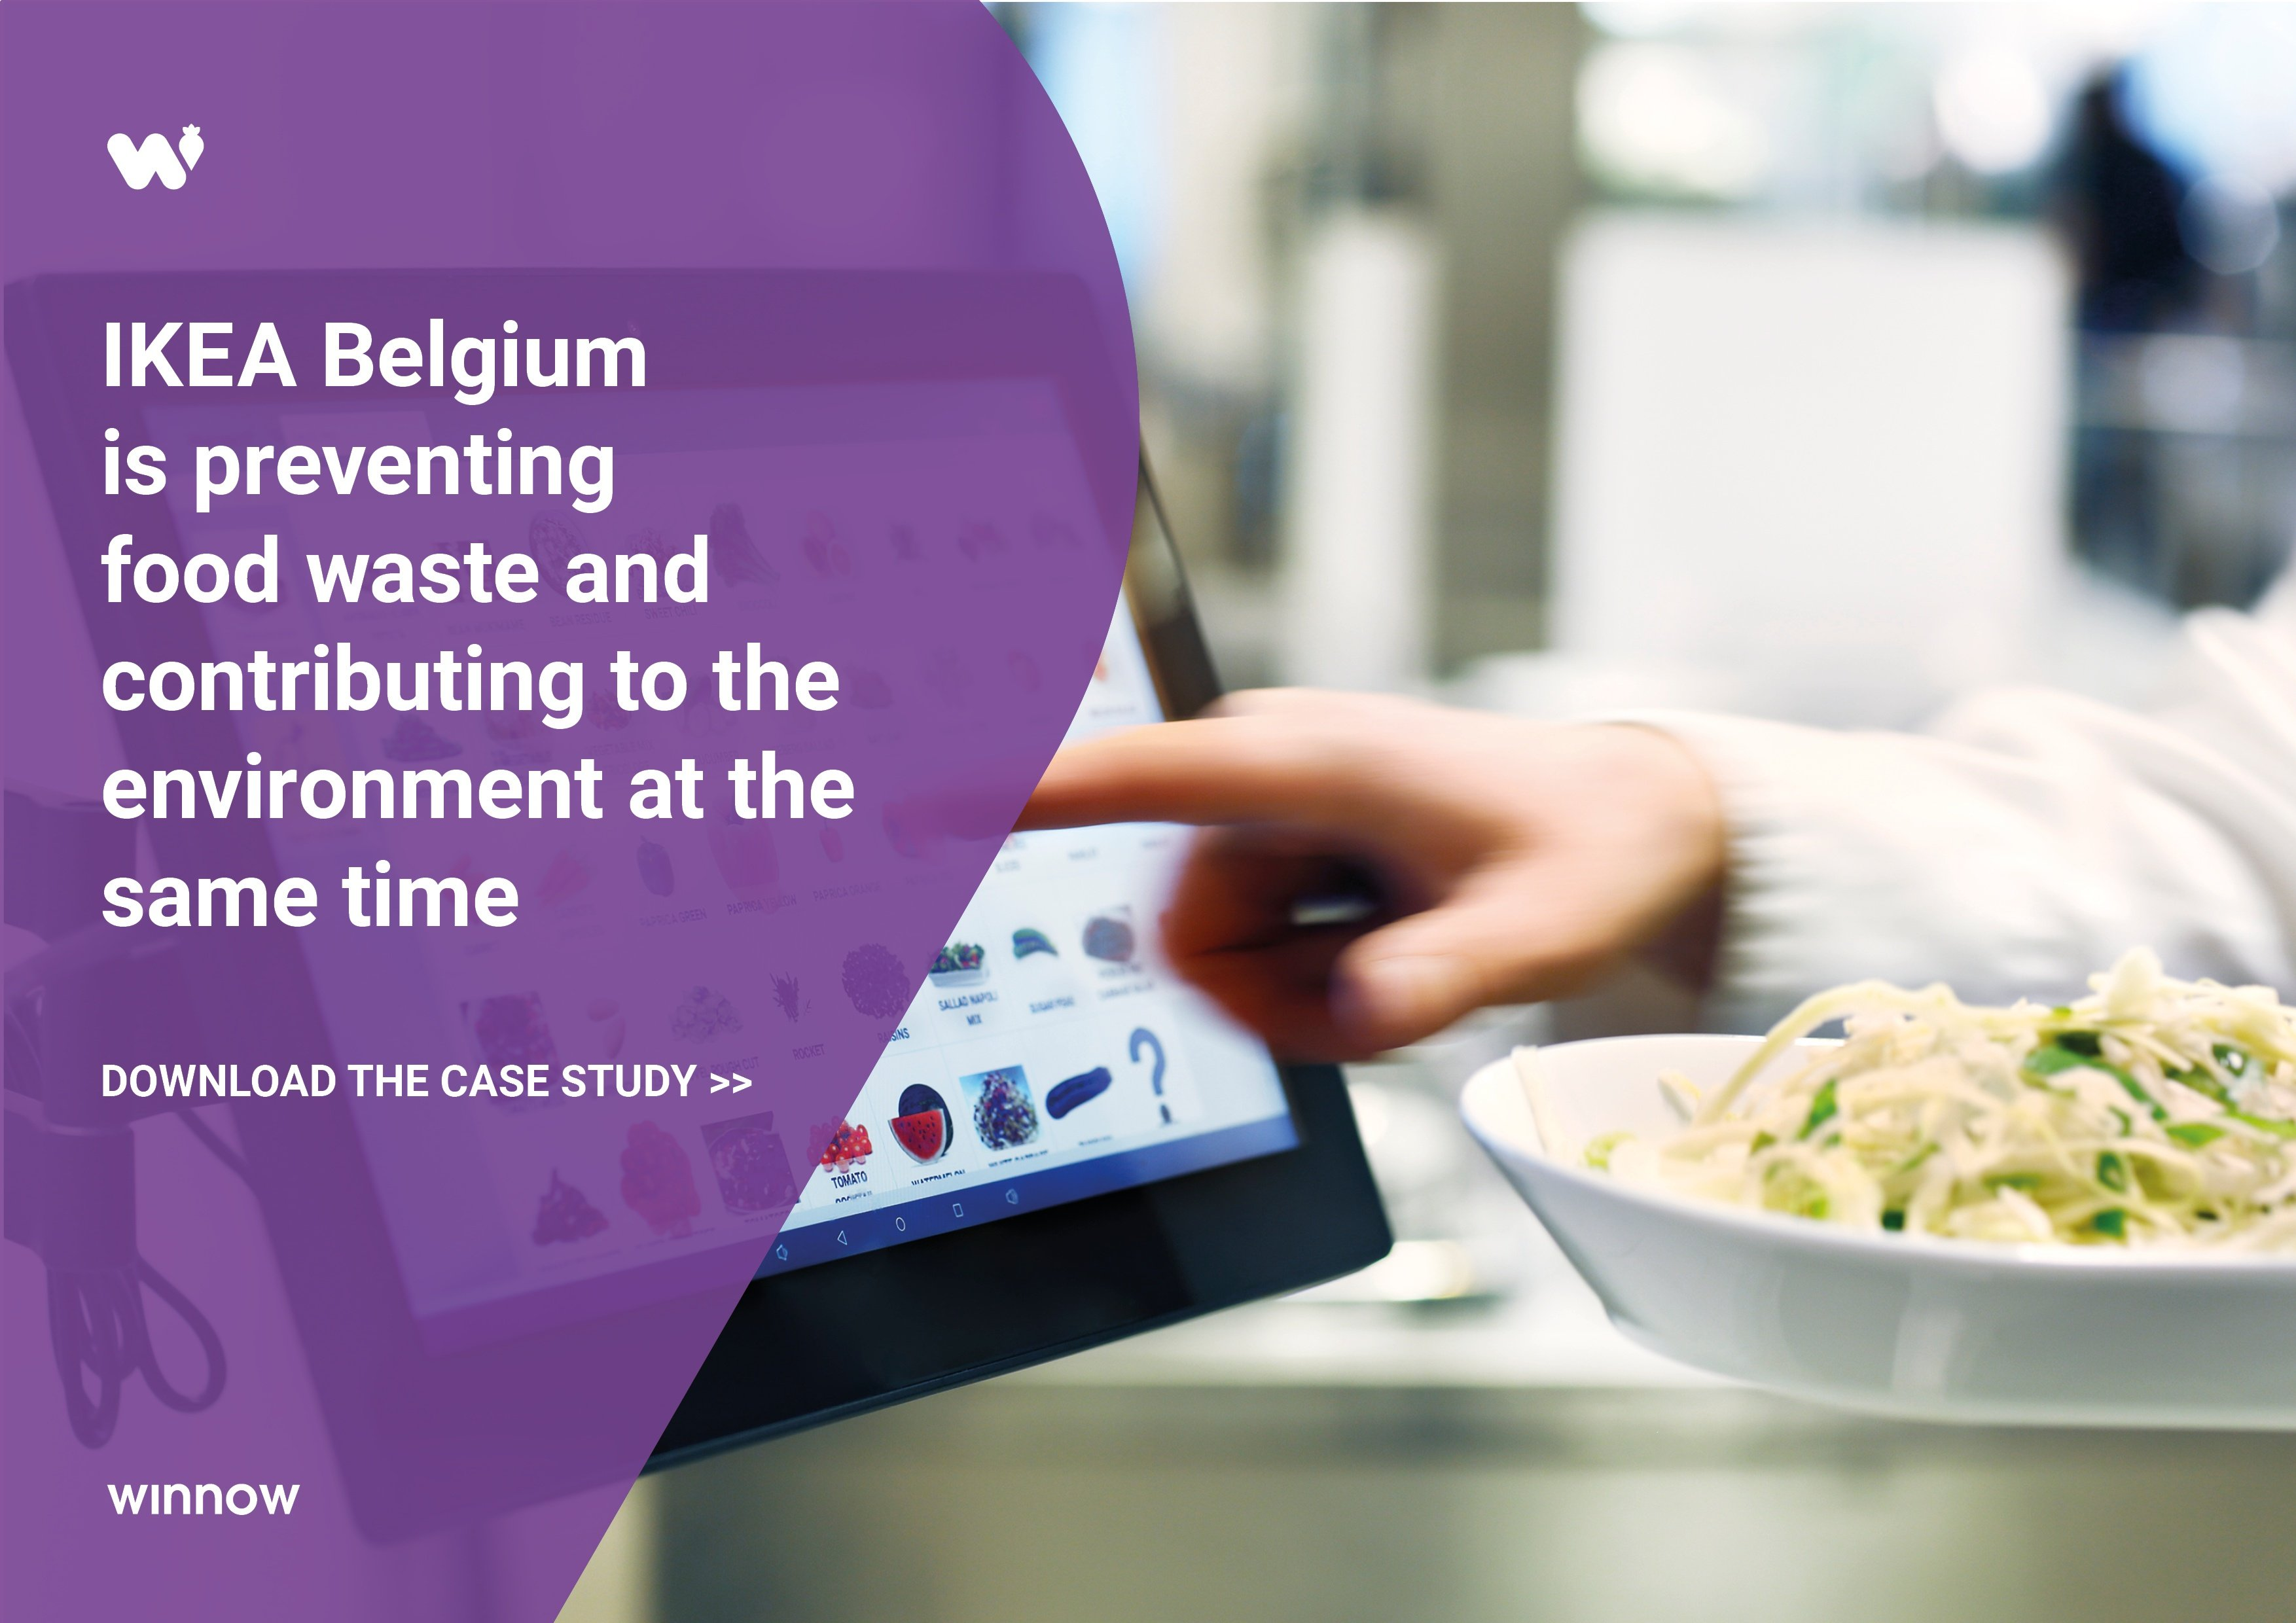 IKEA Belgium is preventing food waste and helping the environment